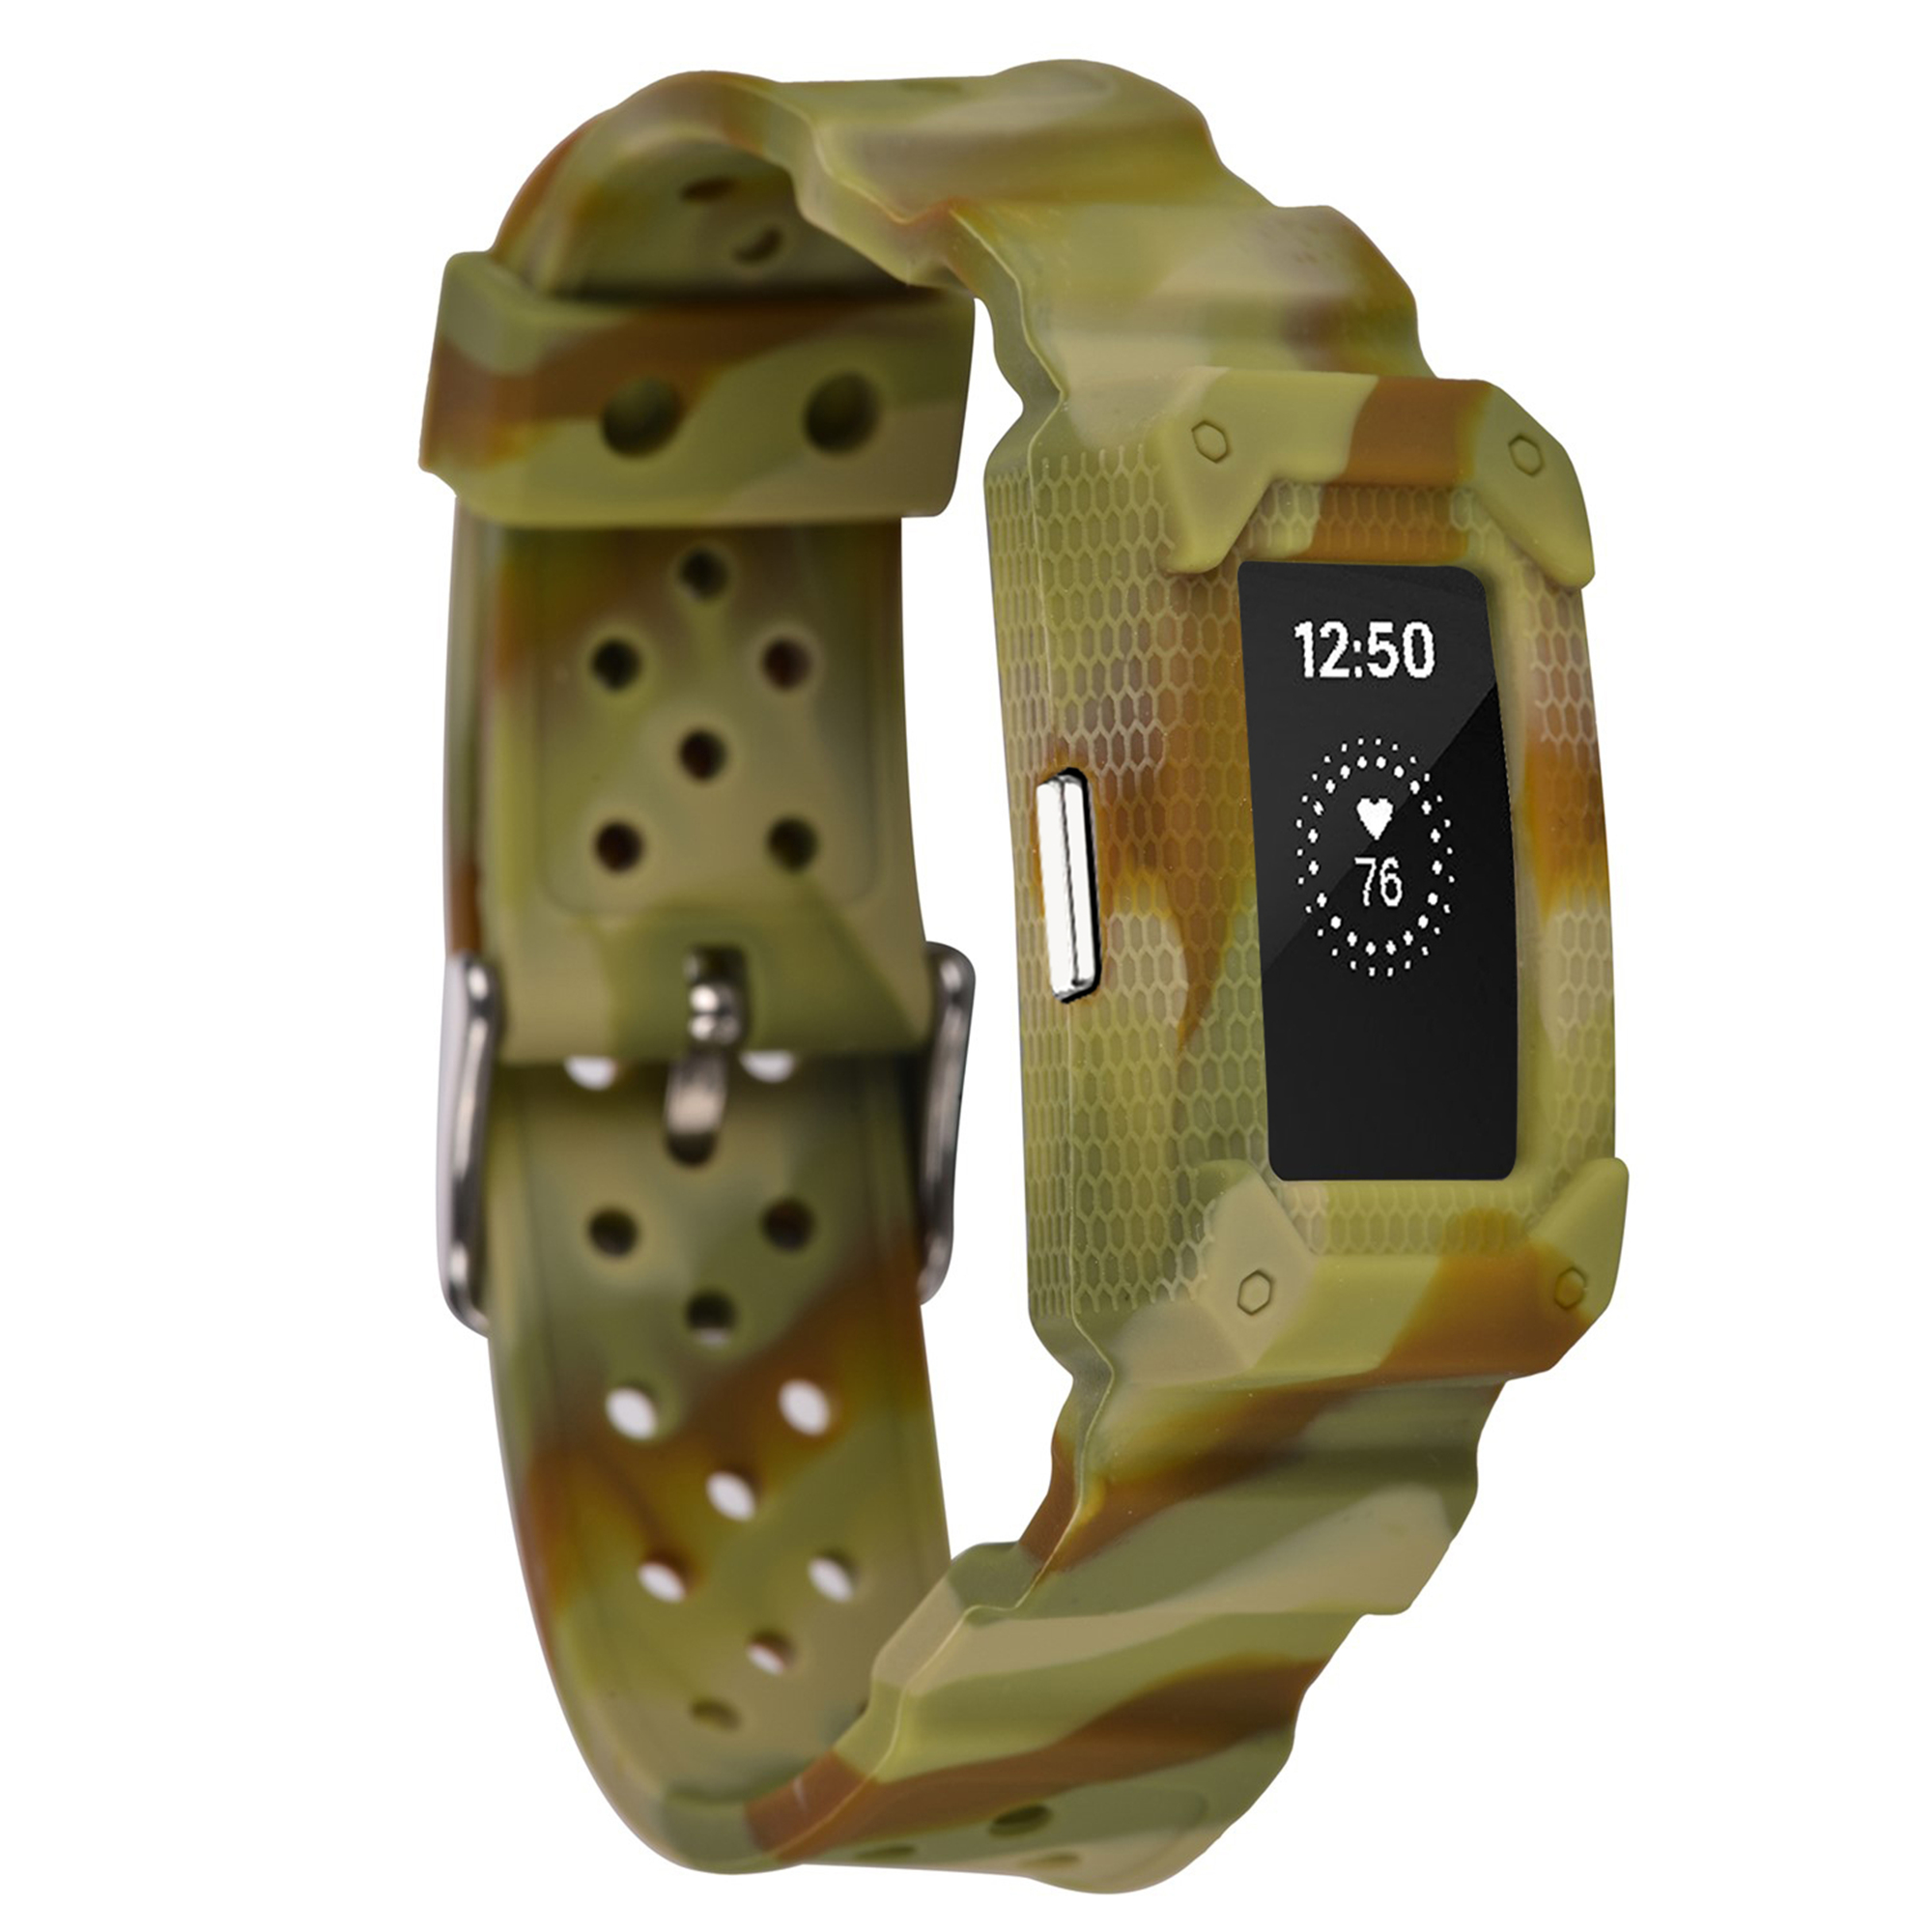 Moretek for Fitbit Charge 2 bands,Fitbit Charge 2 HR Strap(YellowCamo)